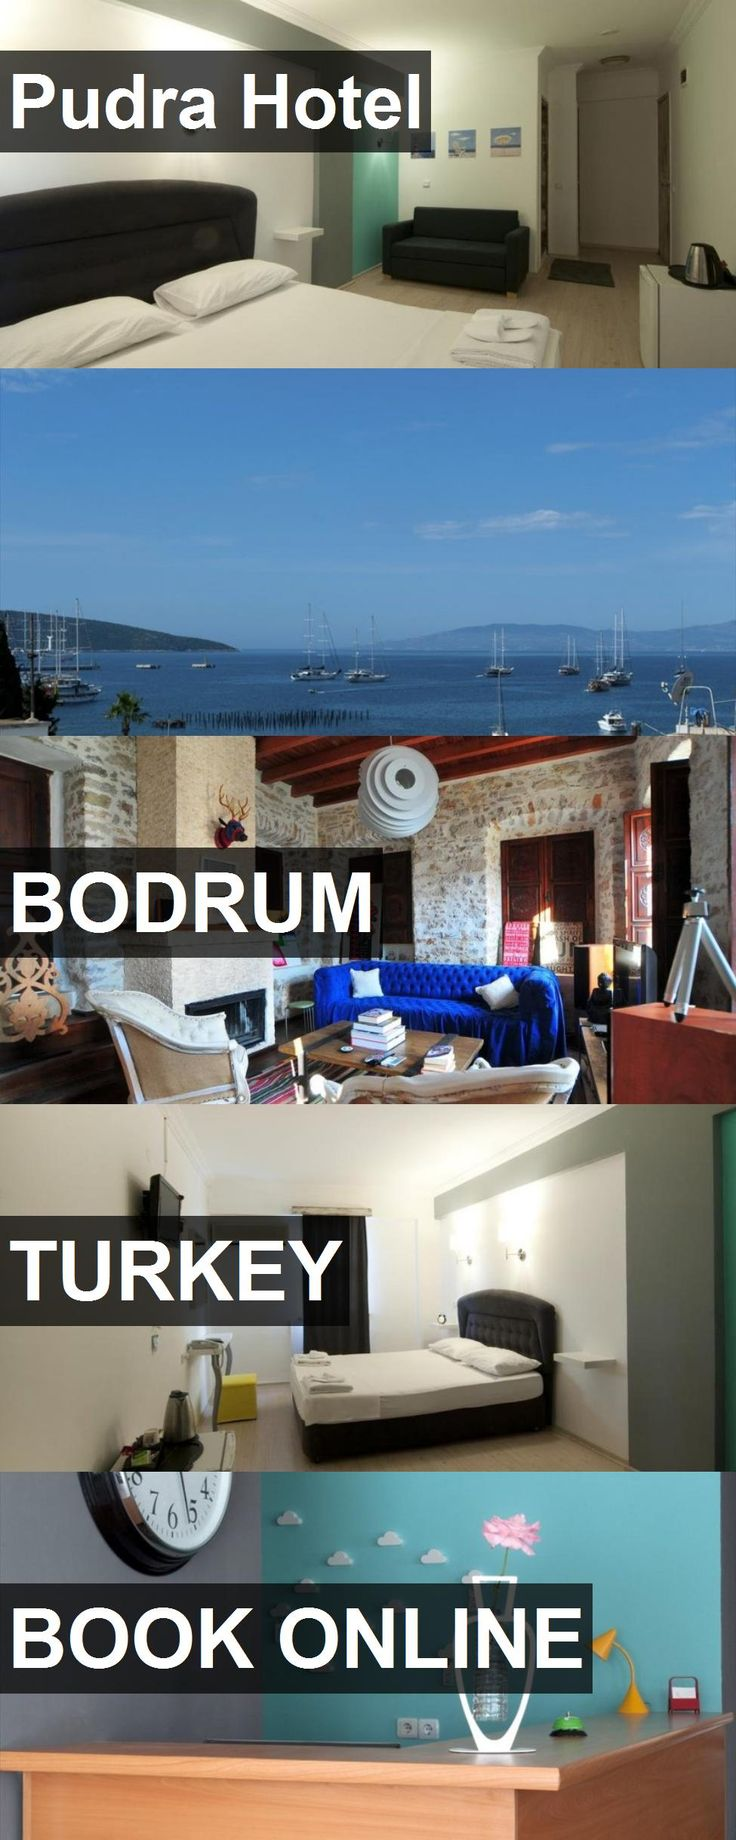 Pudra Hotel in Bodrum, Turkey. For more information, photos, reviews and best prices please follow the link. #Turkey #Bodrum #travel #vacation #hotel